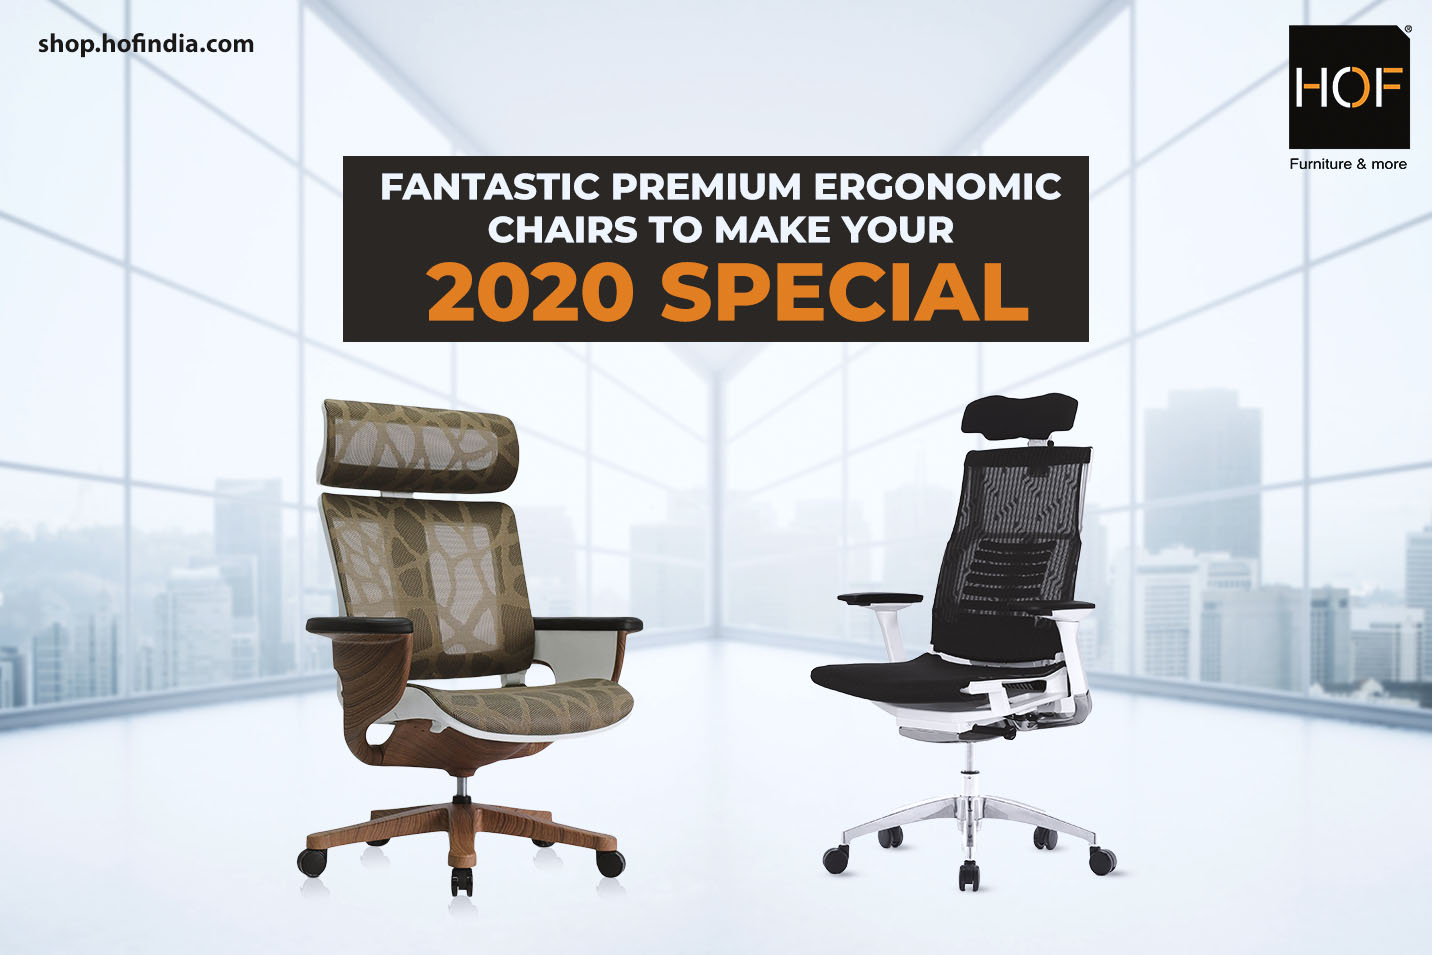 Fantastic premium ergonomic chairs to make your 2020 special